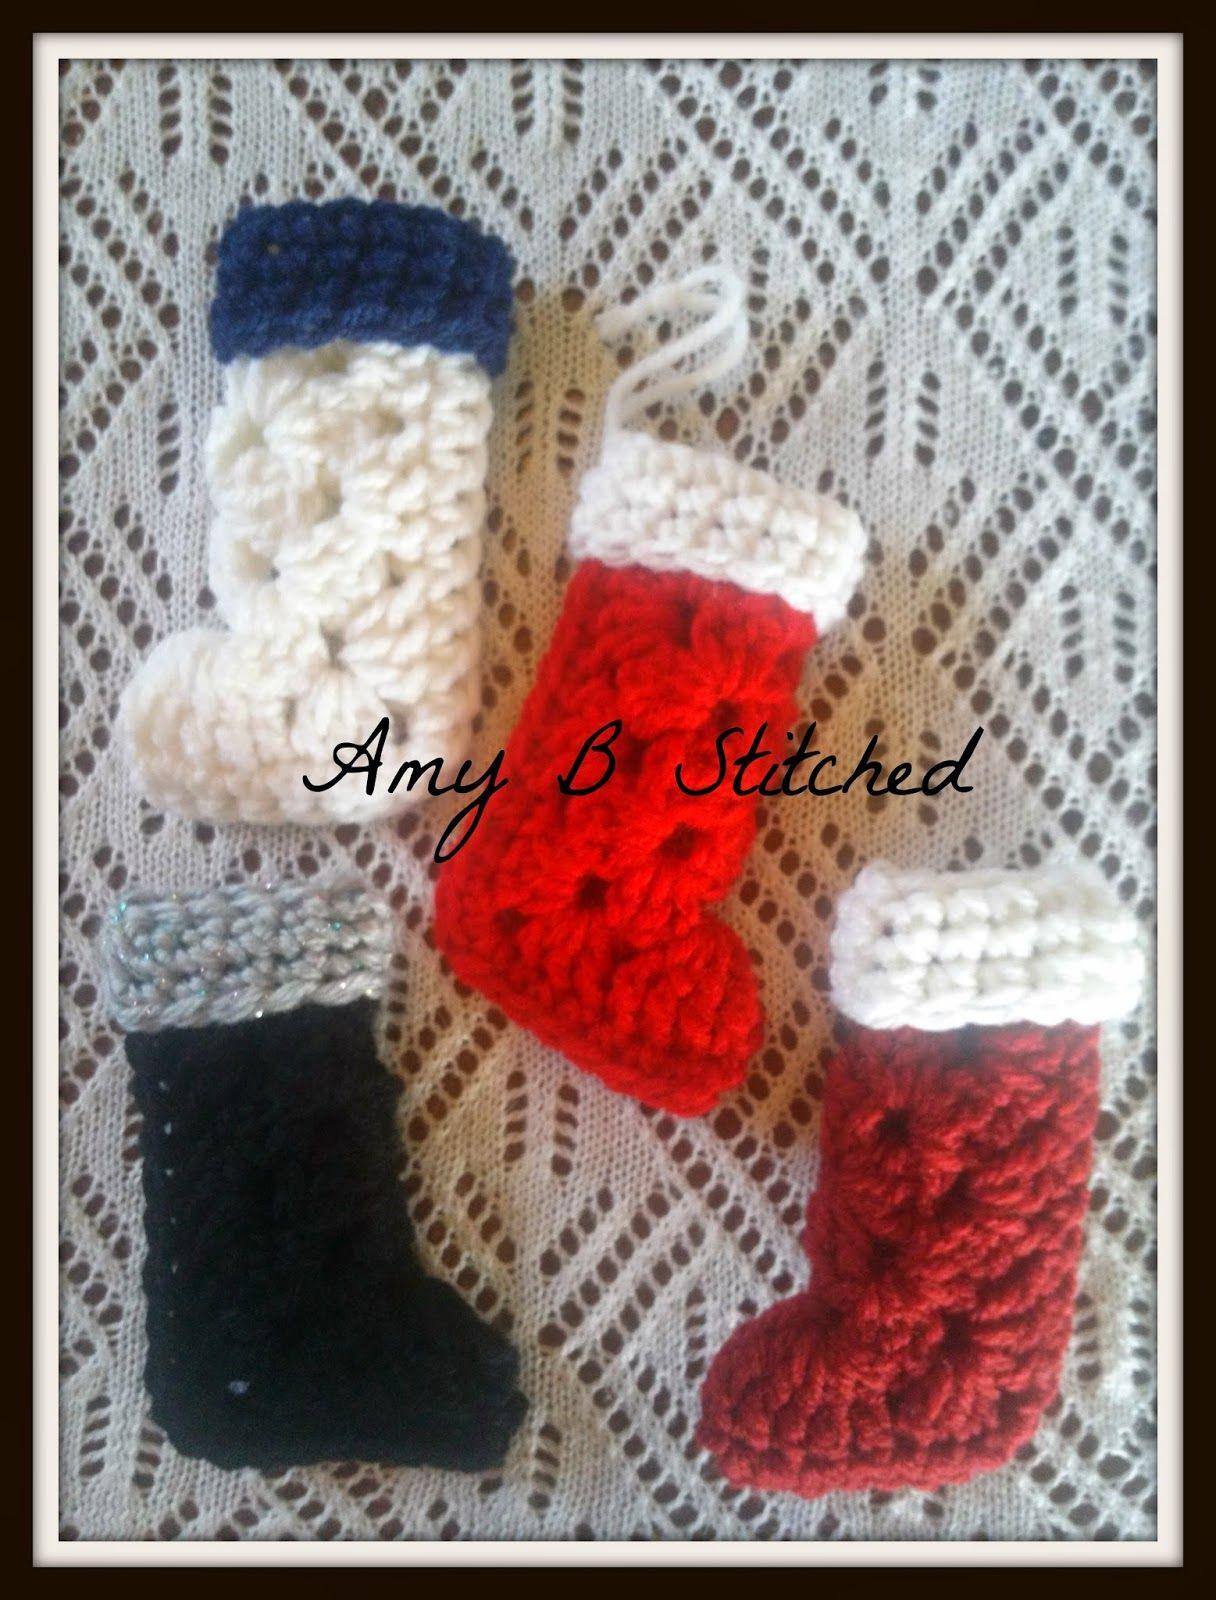 Best Of Granny Square Stocking ornament by Amy B Stitched Free Granny Square Christmas Stocking Crochet Pattern Of Amazing 44 Pics Granny Square Christmas Stocking Crochet Pattern